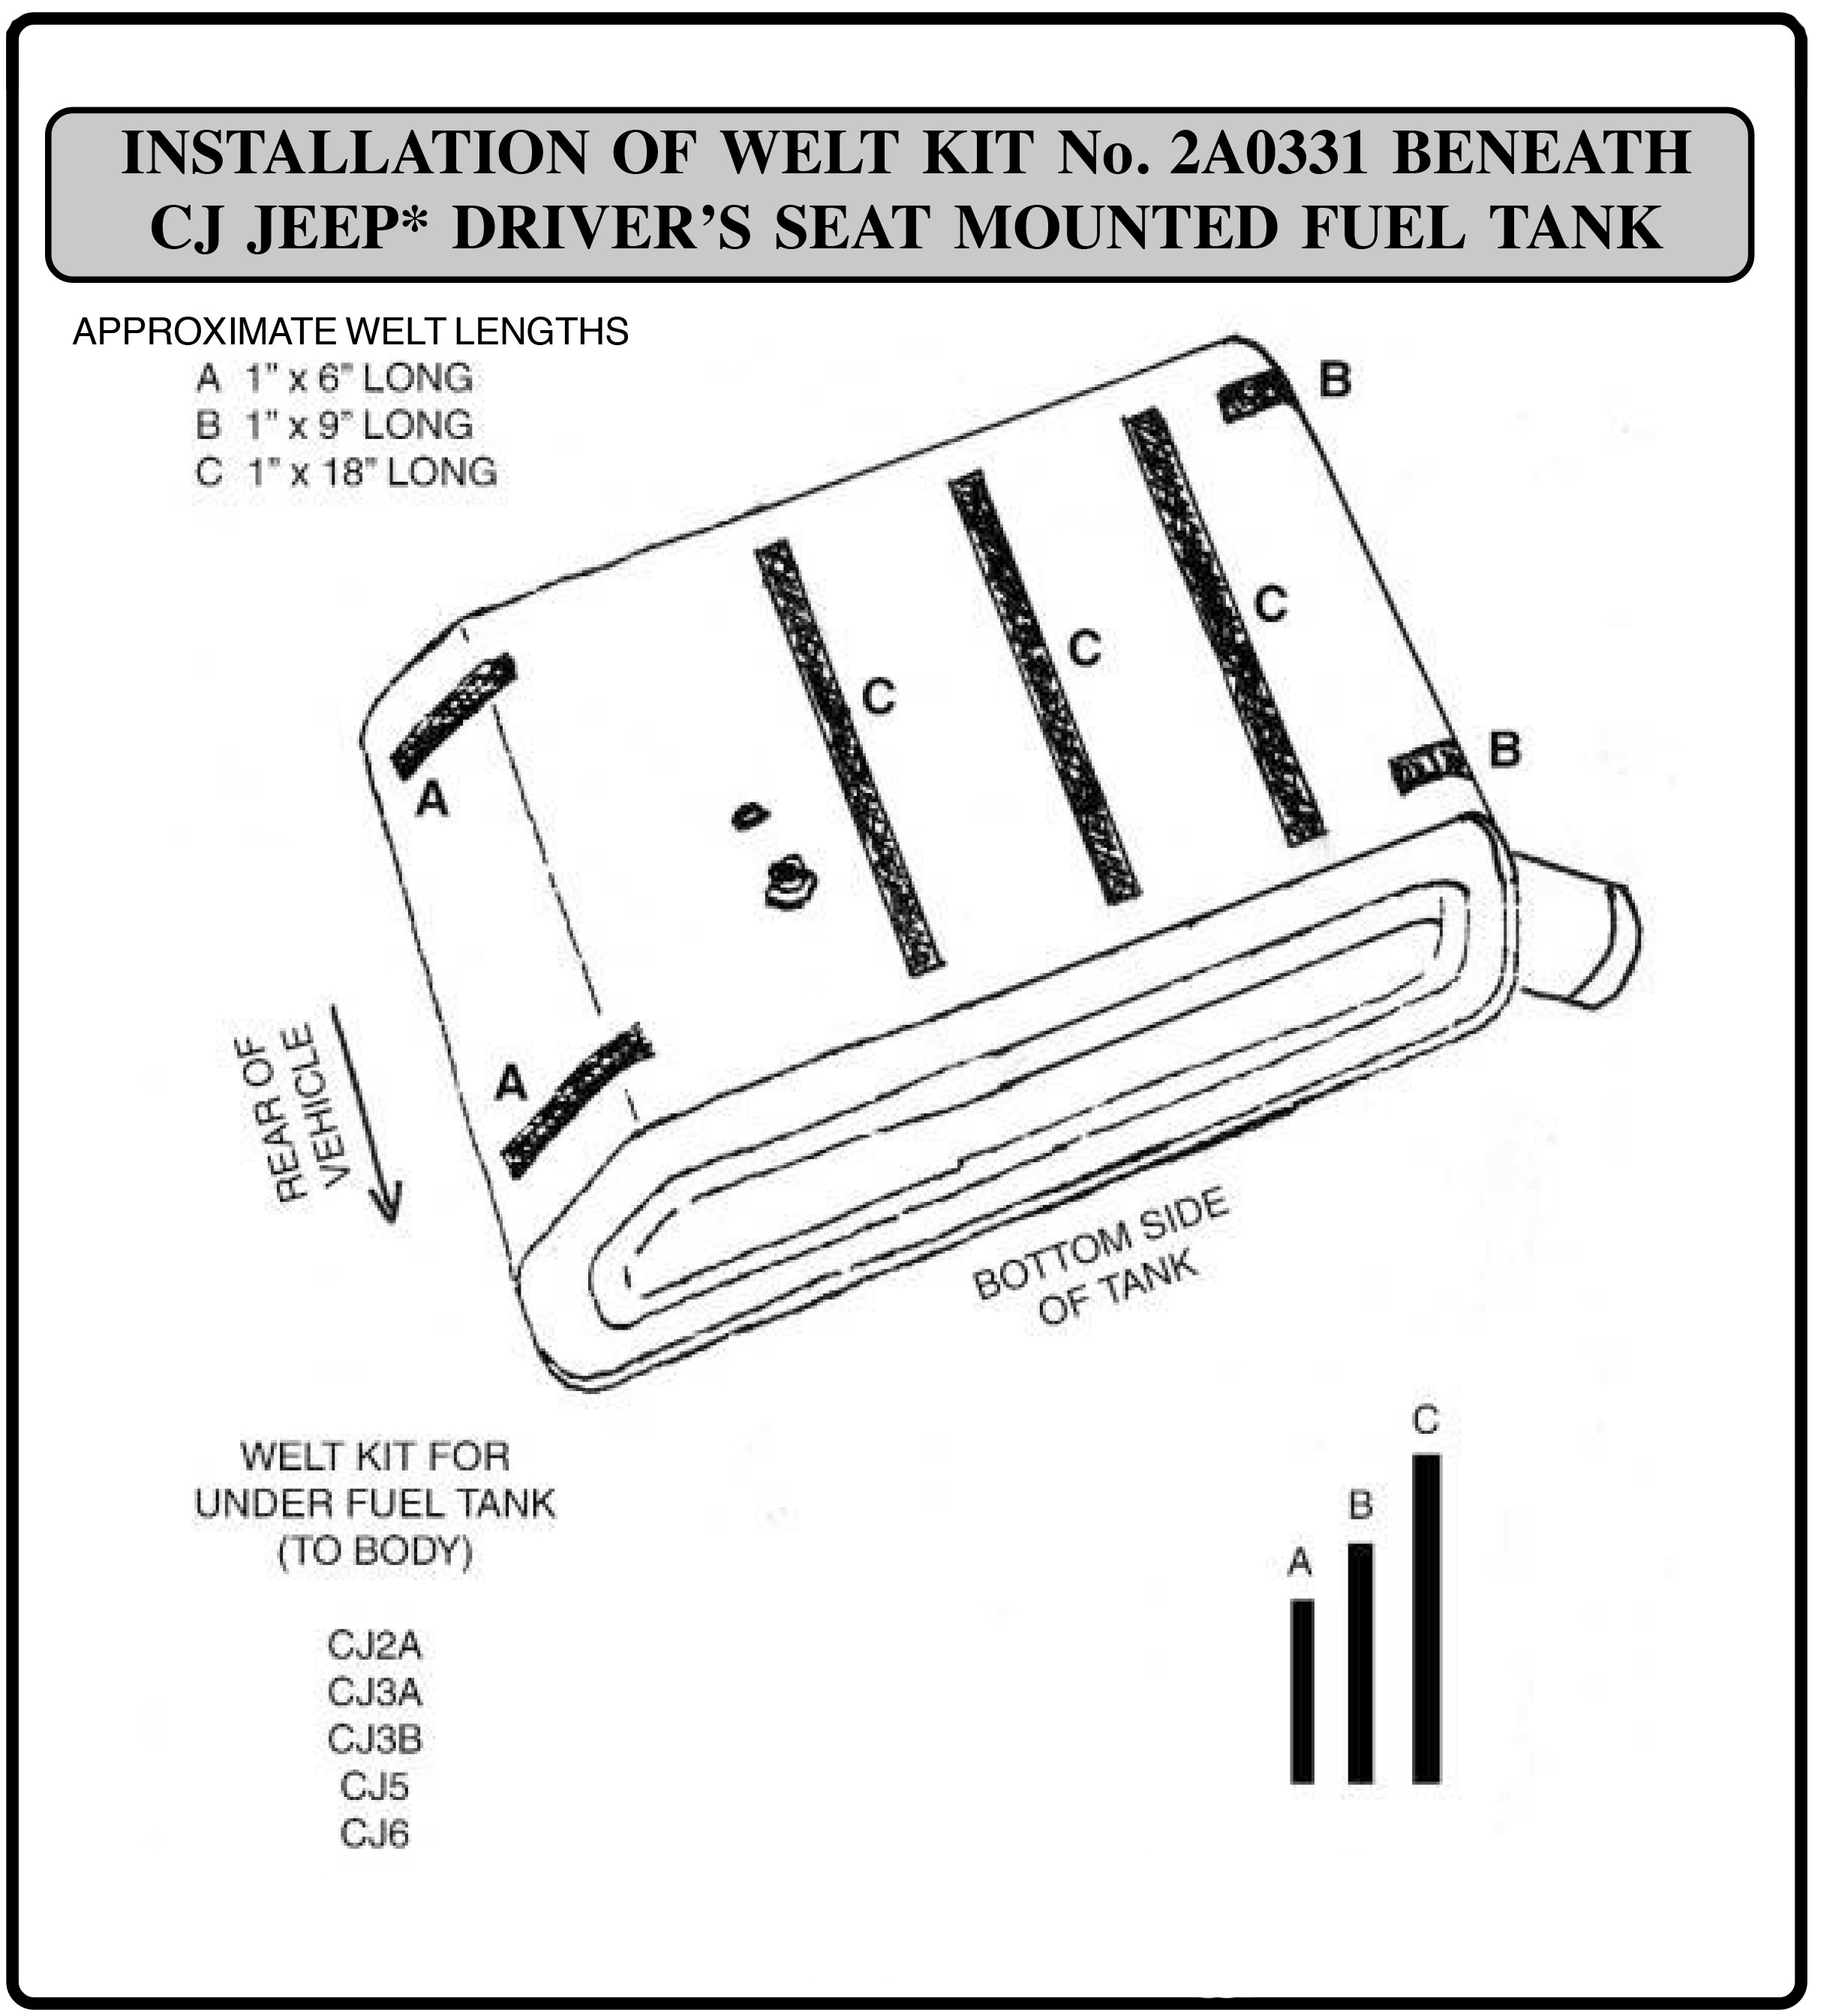 Fuel Tank Anti-Squeak Felt Kit Installation Guide